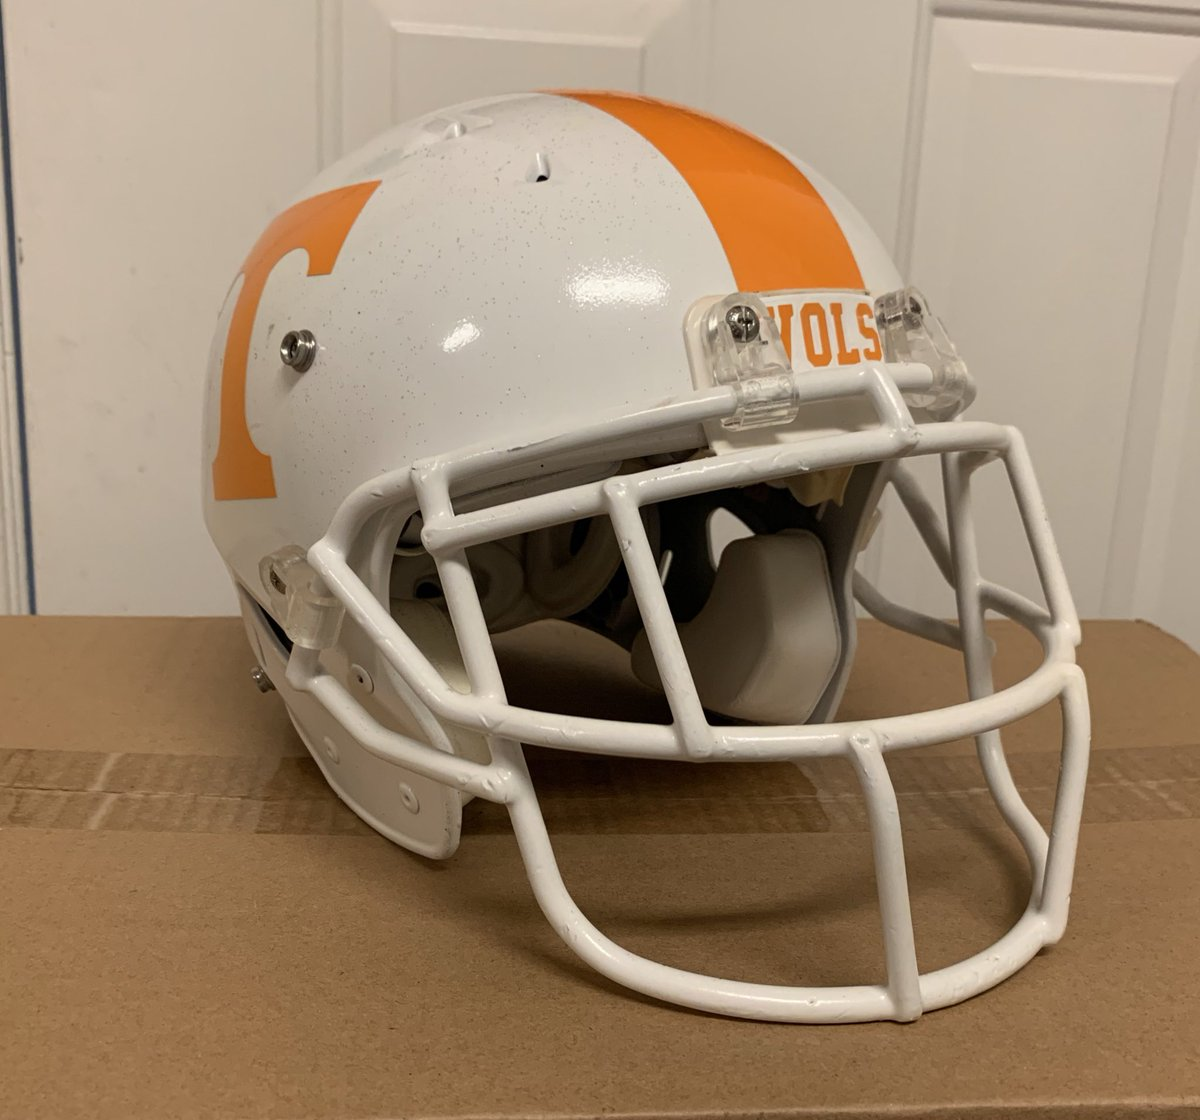 Another @Vol_Football helmet finished! This one is based on the style Eric Berry wore from 2007-2009! https://t.co/8EBLuB8deH